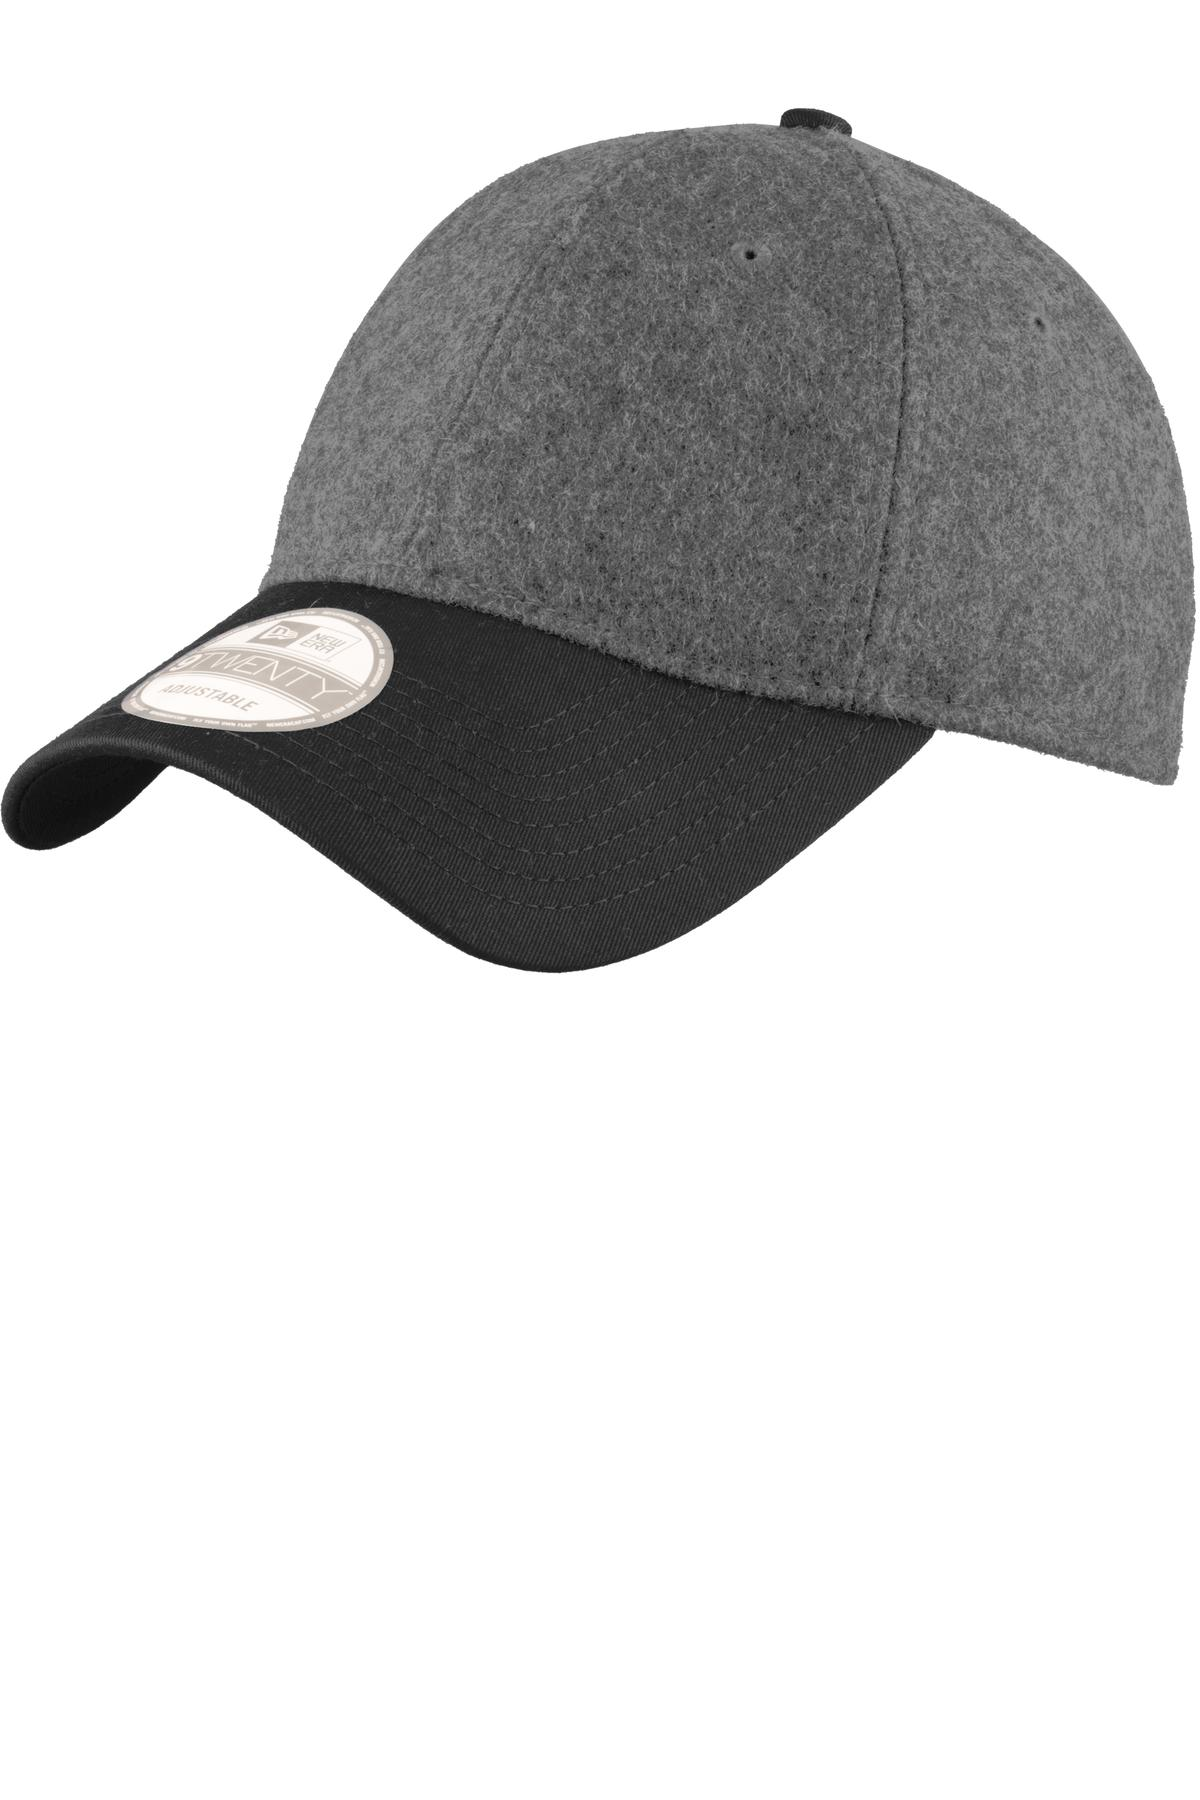 New Era® NE206 - Melton Wool Heather Cap